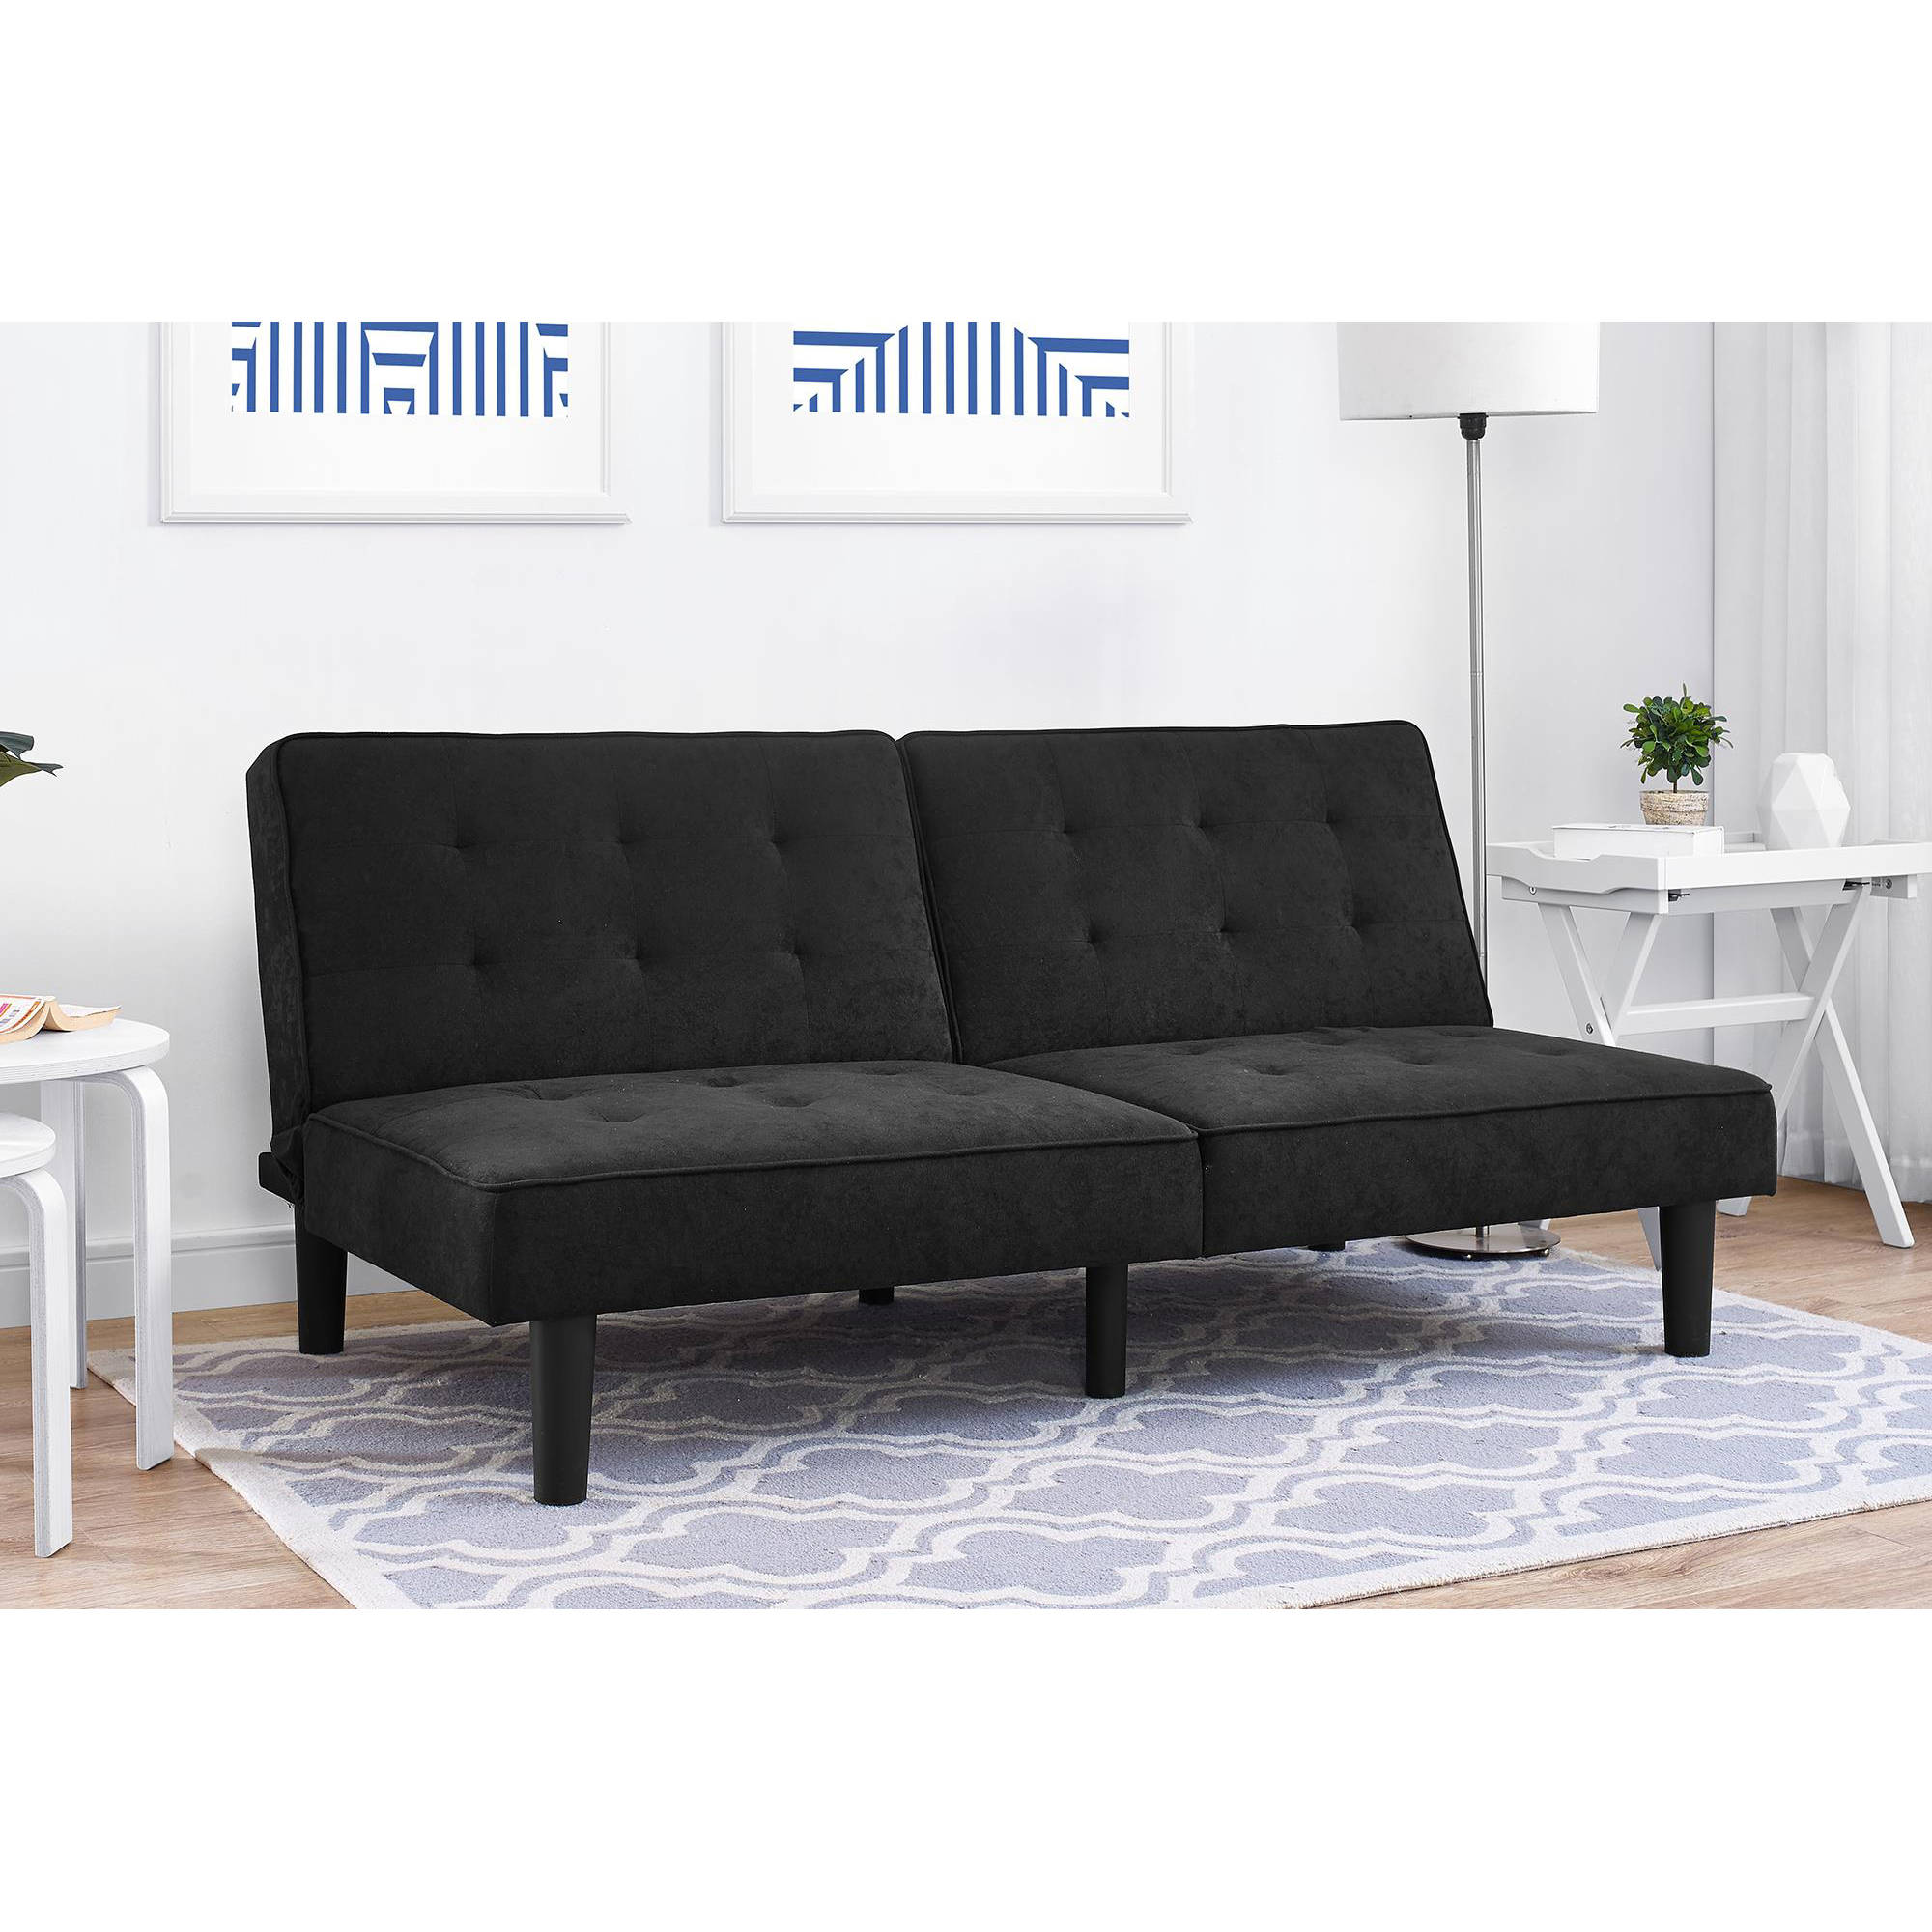 Mainstays Arlo Futon, Multiple Colors